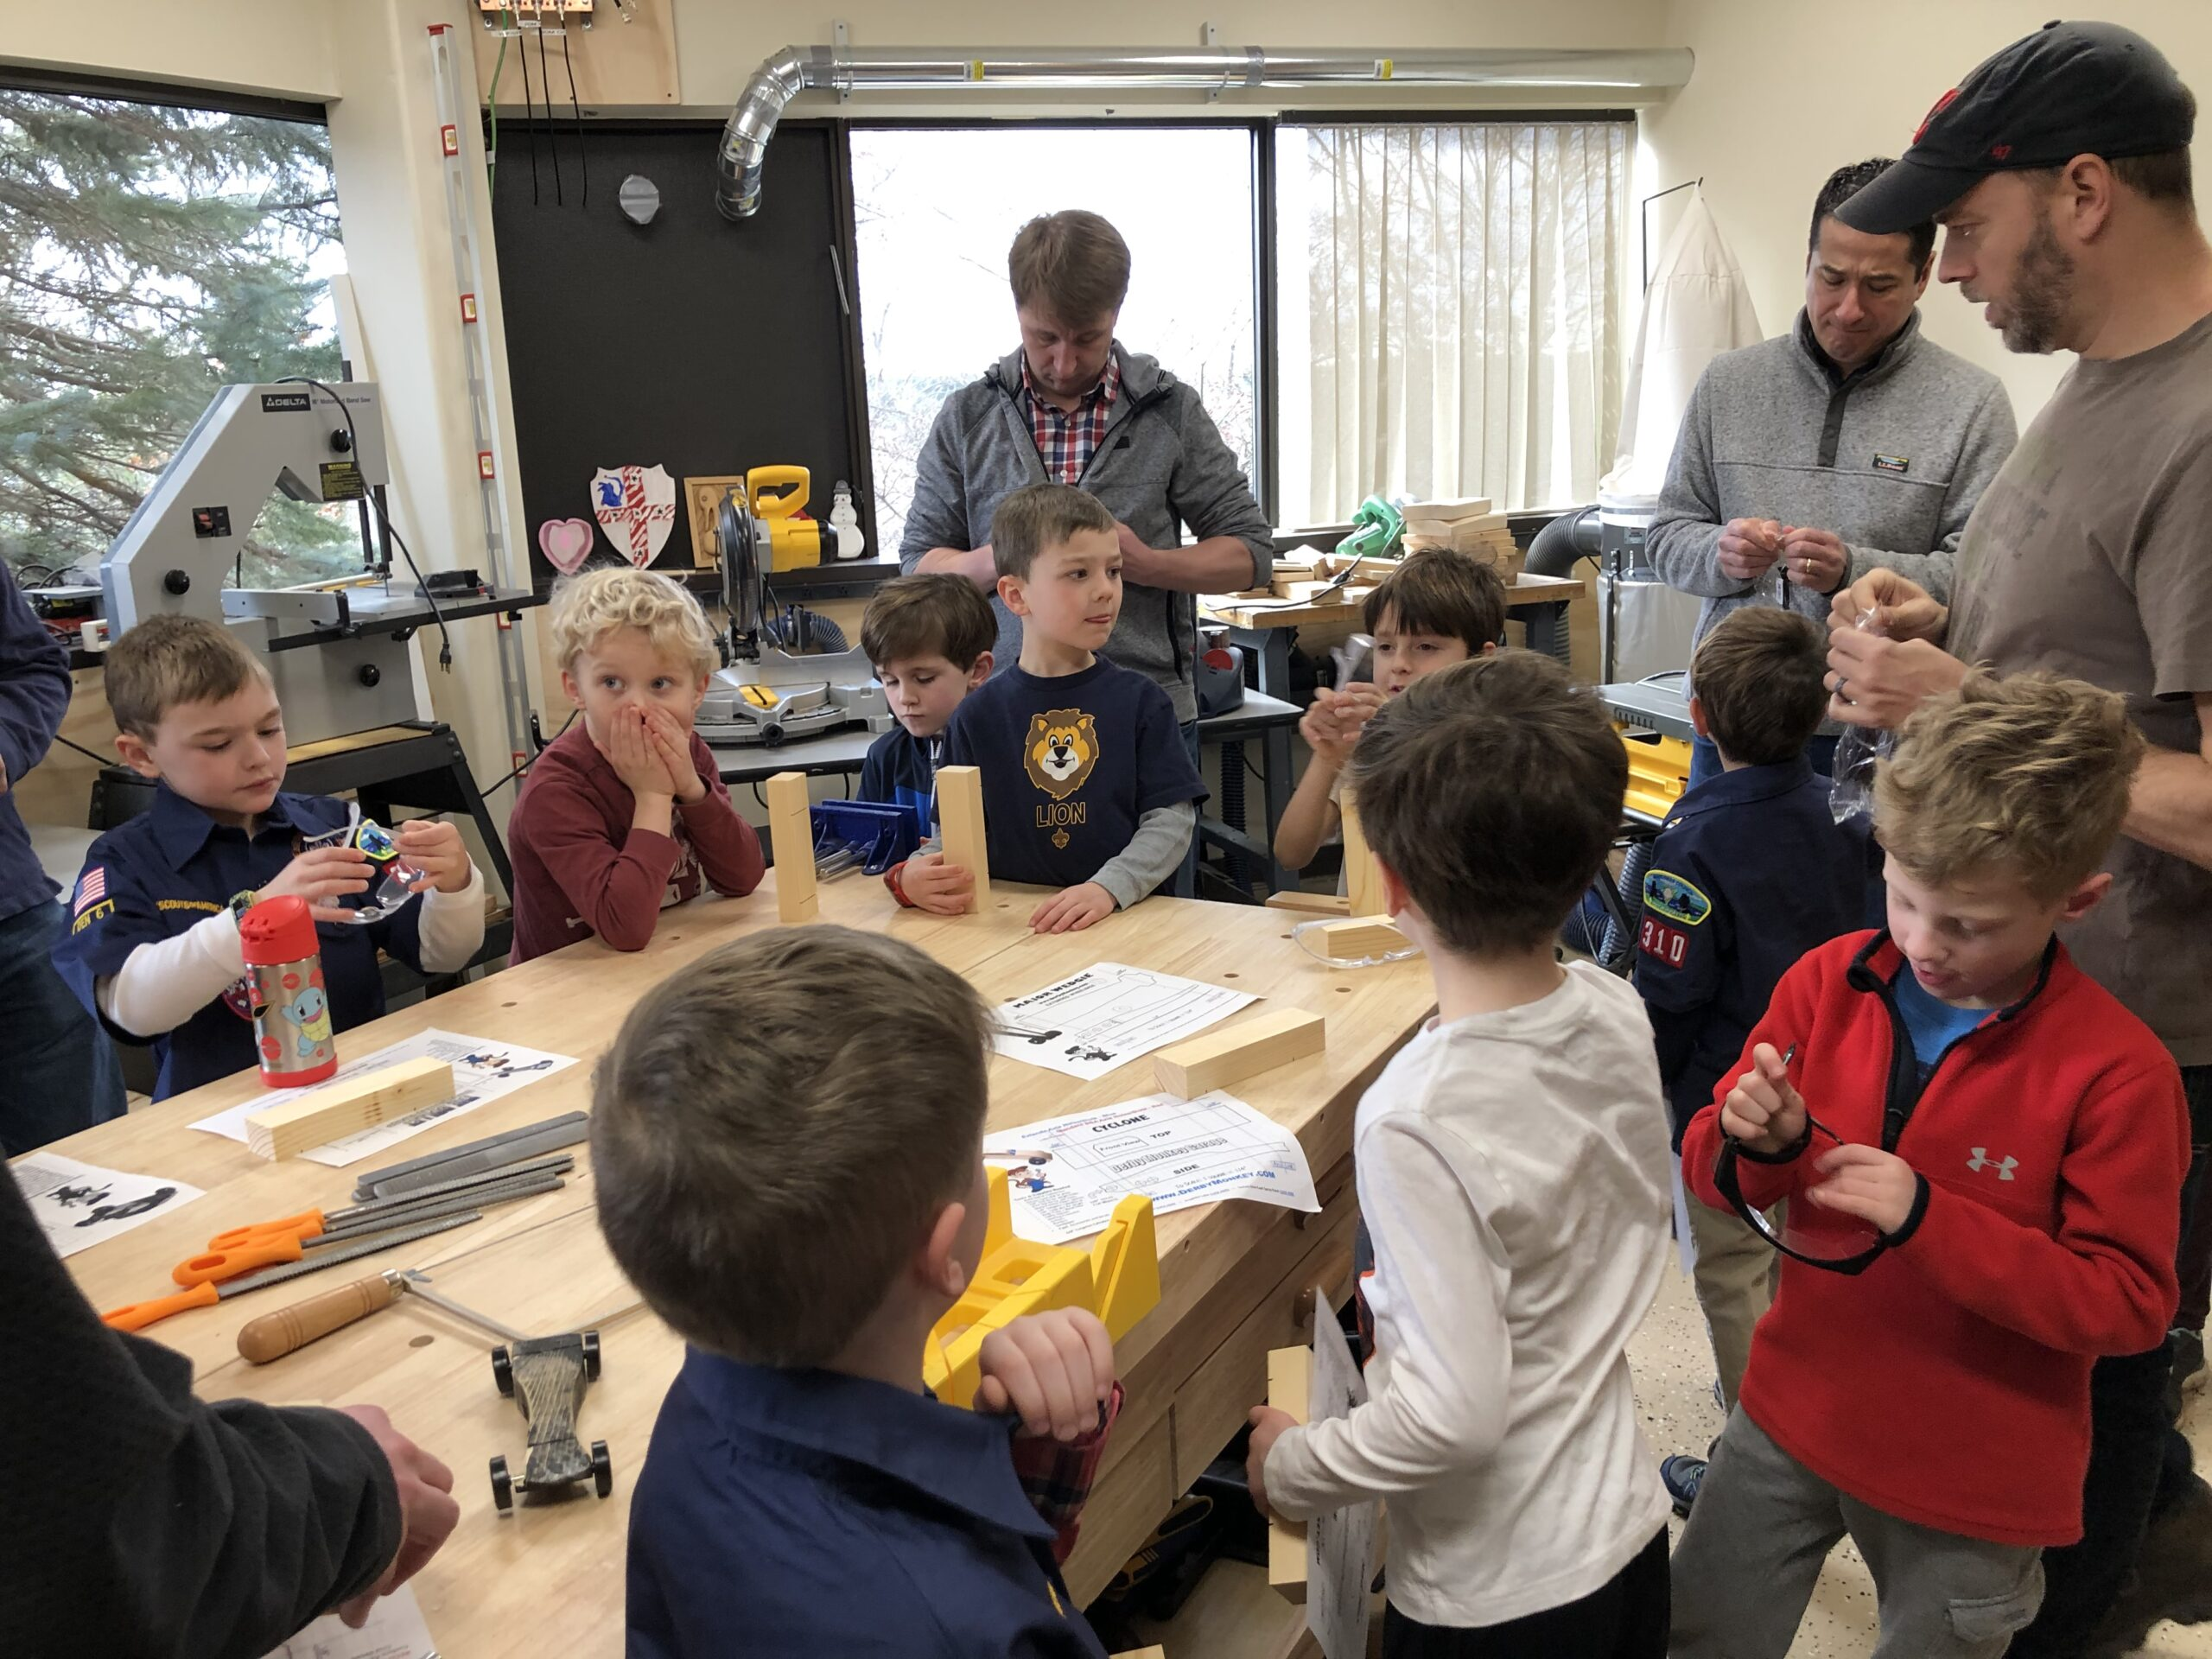 Pinewood Derby Build at New England Sci-Tech